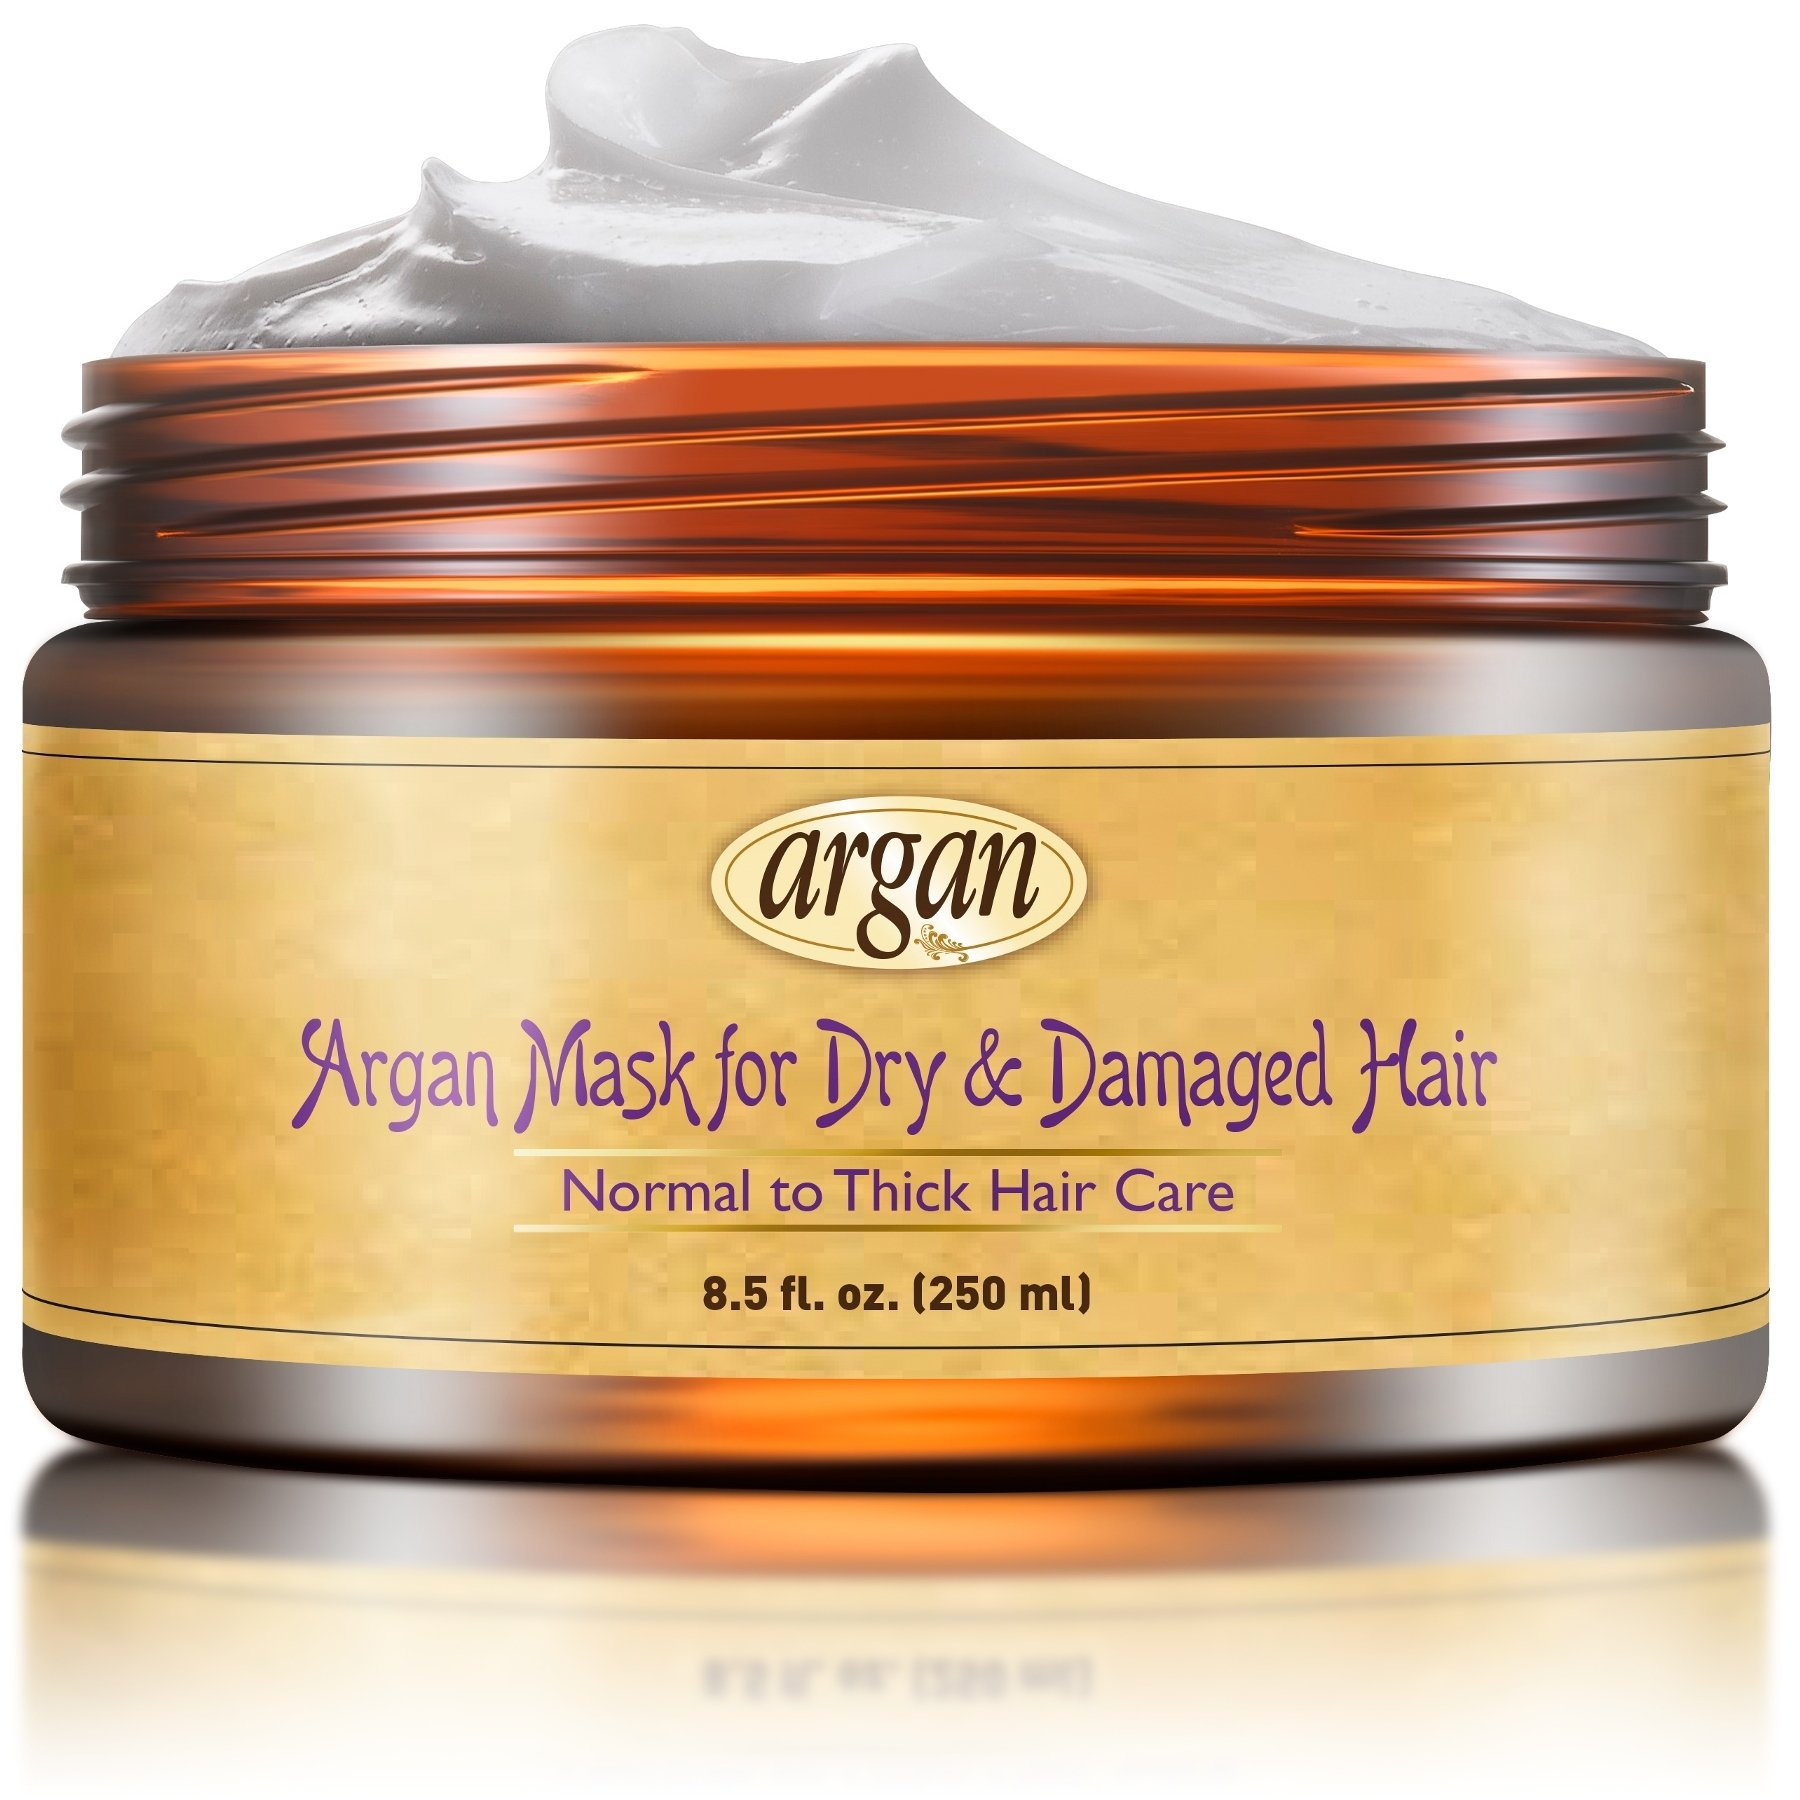 Vitamins Hair Mask Deep Conditioner - Normal to Thick Deep Conditioning Hair Treatment Repair Masque with Argan Oil for Dry Damaged Hair